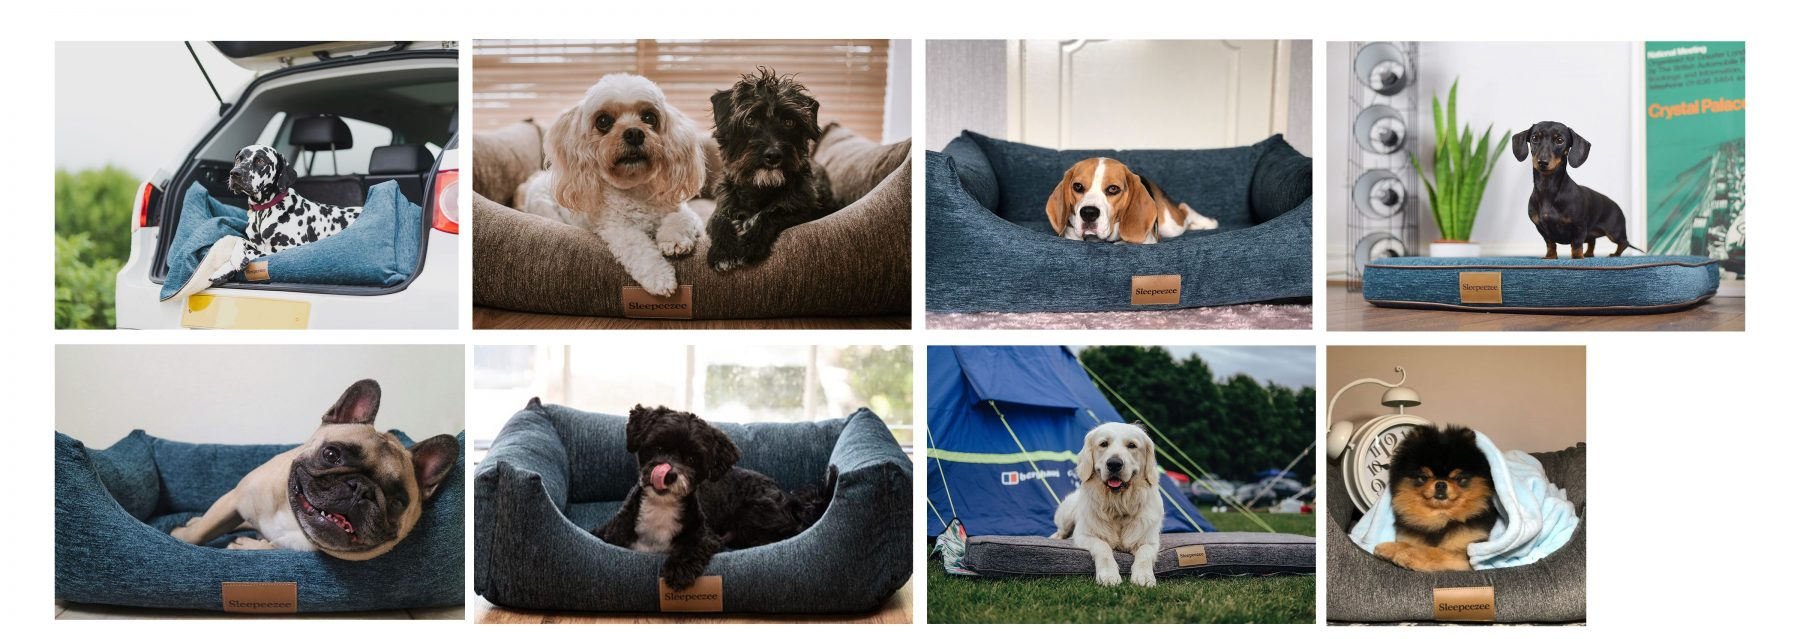 Collage of dogs in Sleepeezee Dog Beds